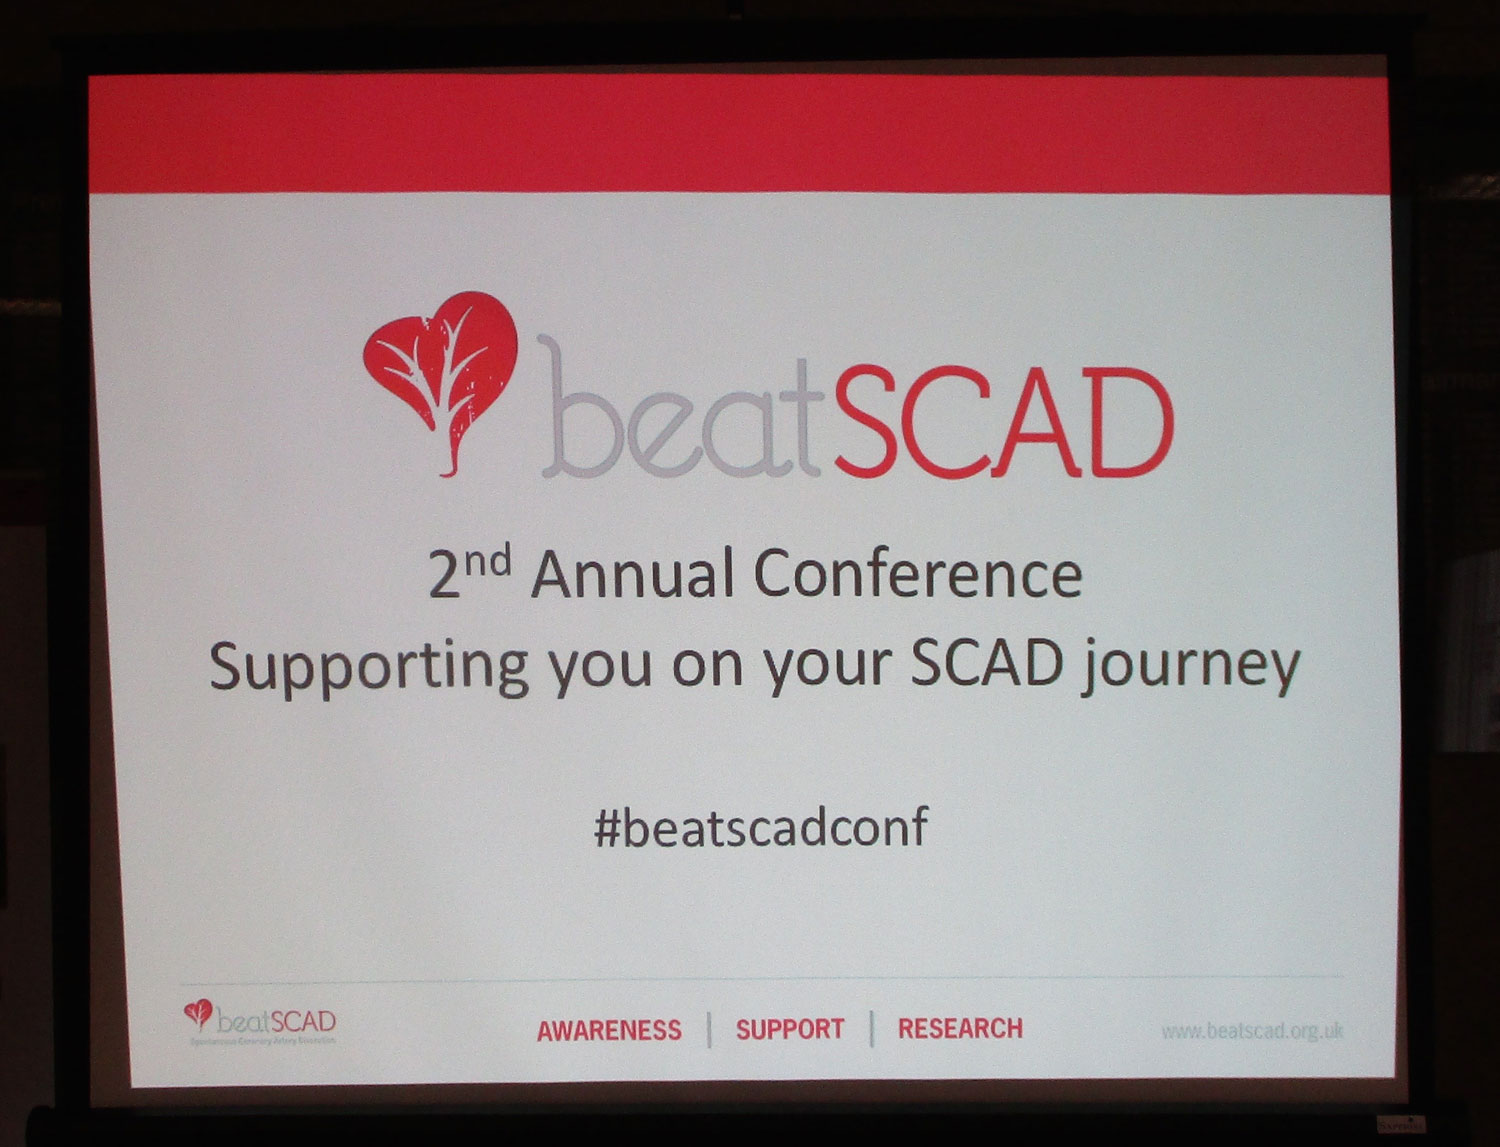 Supporting you on your SCAD journey